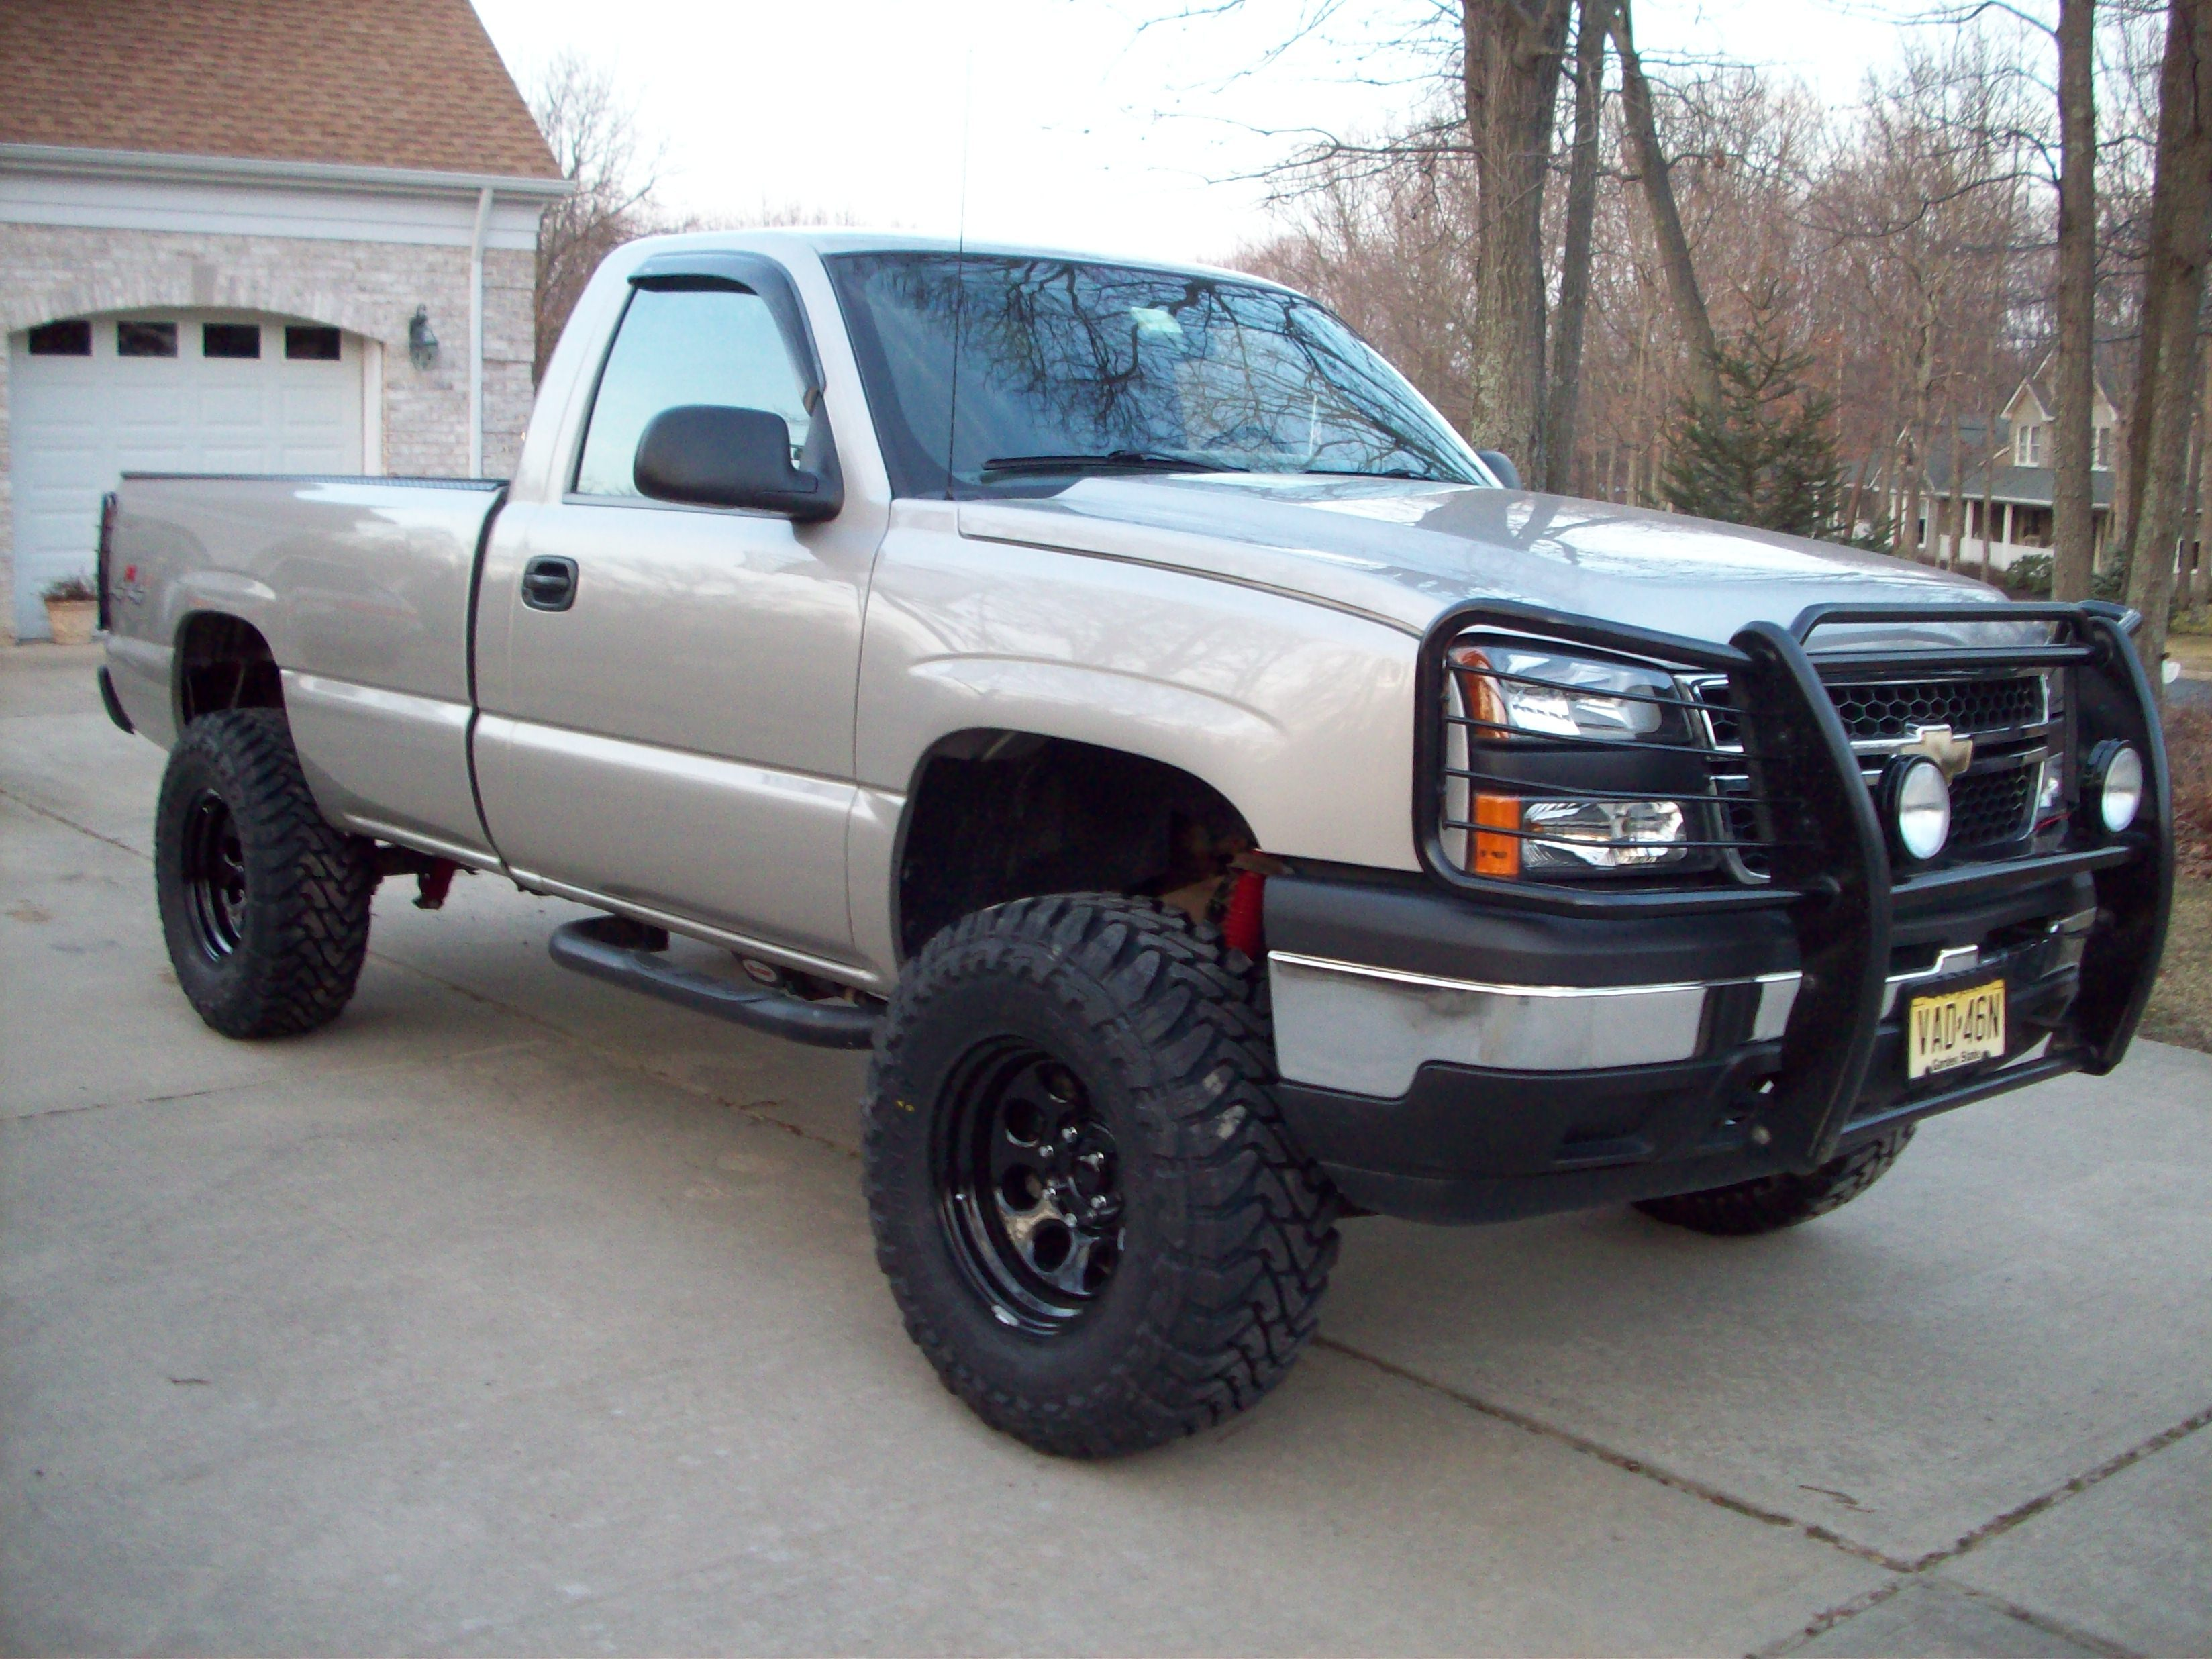 Wrecking Crew 2006 Chevrolet Silverado 1500 Regular Cab Specs 1966